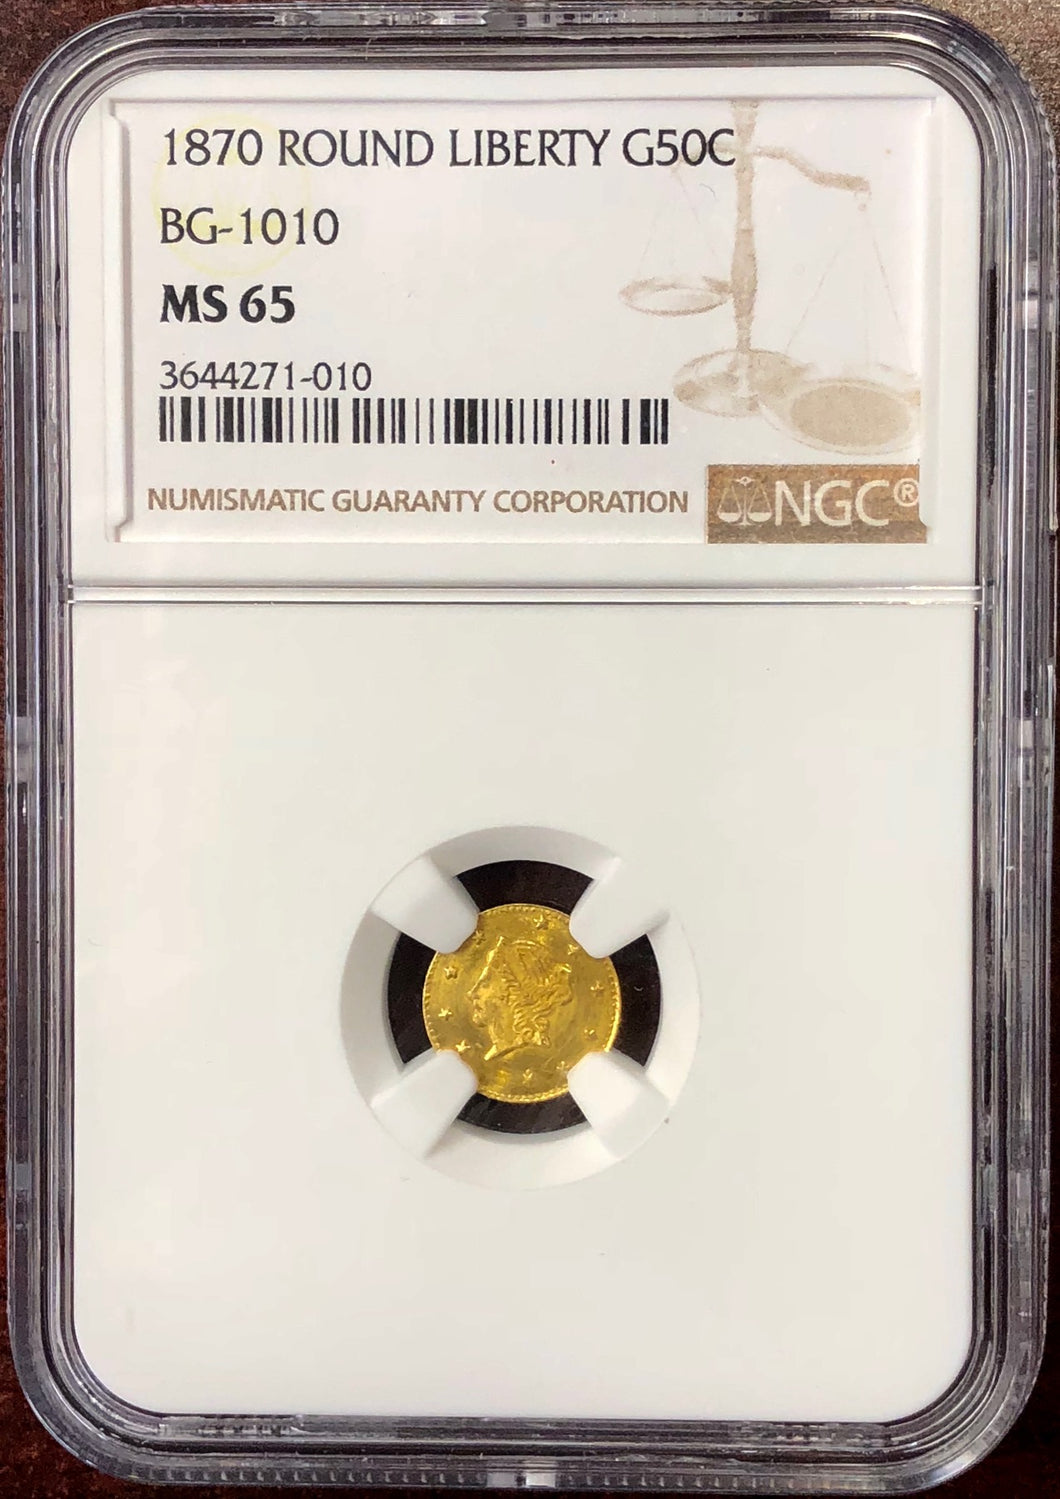 1870 California Fractional Gold BG-1010 50c NGC MS 65